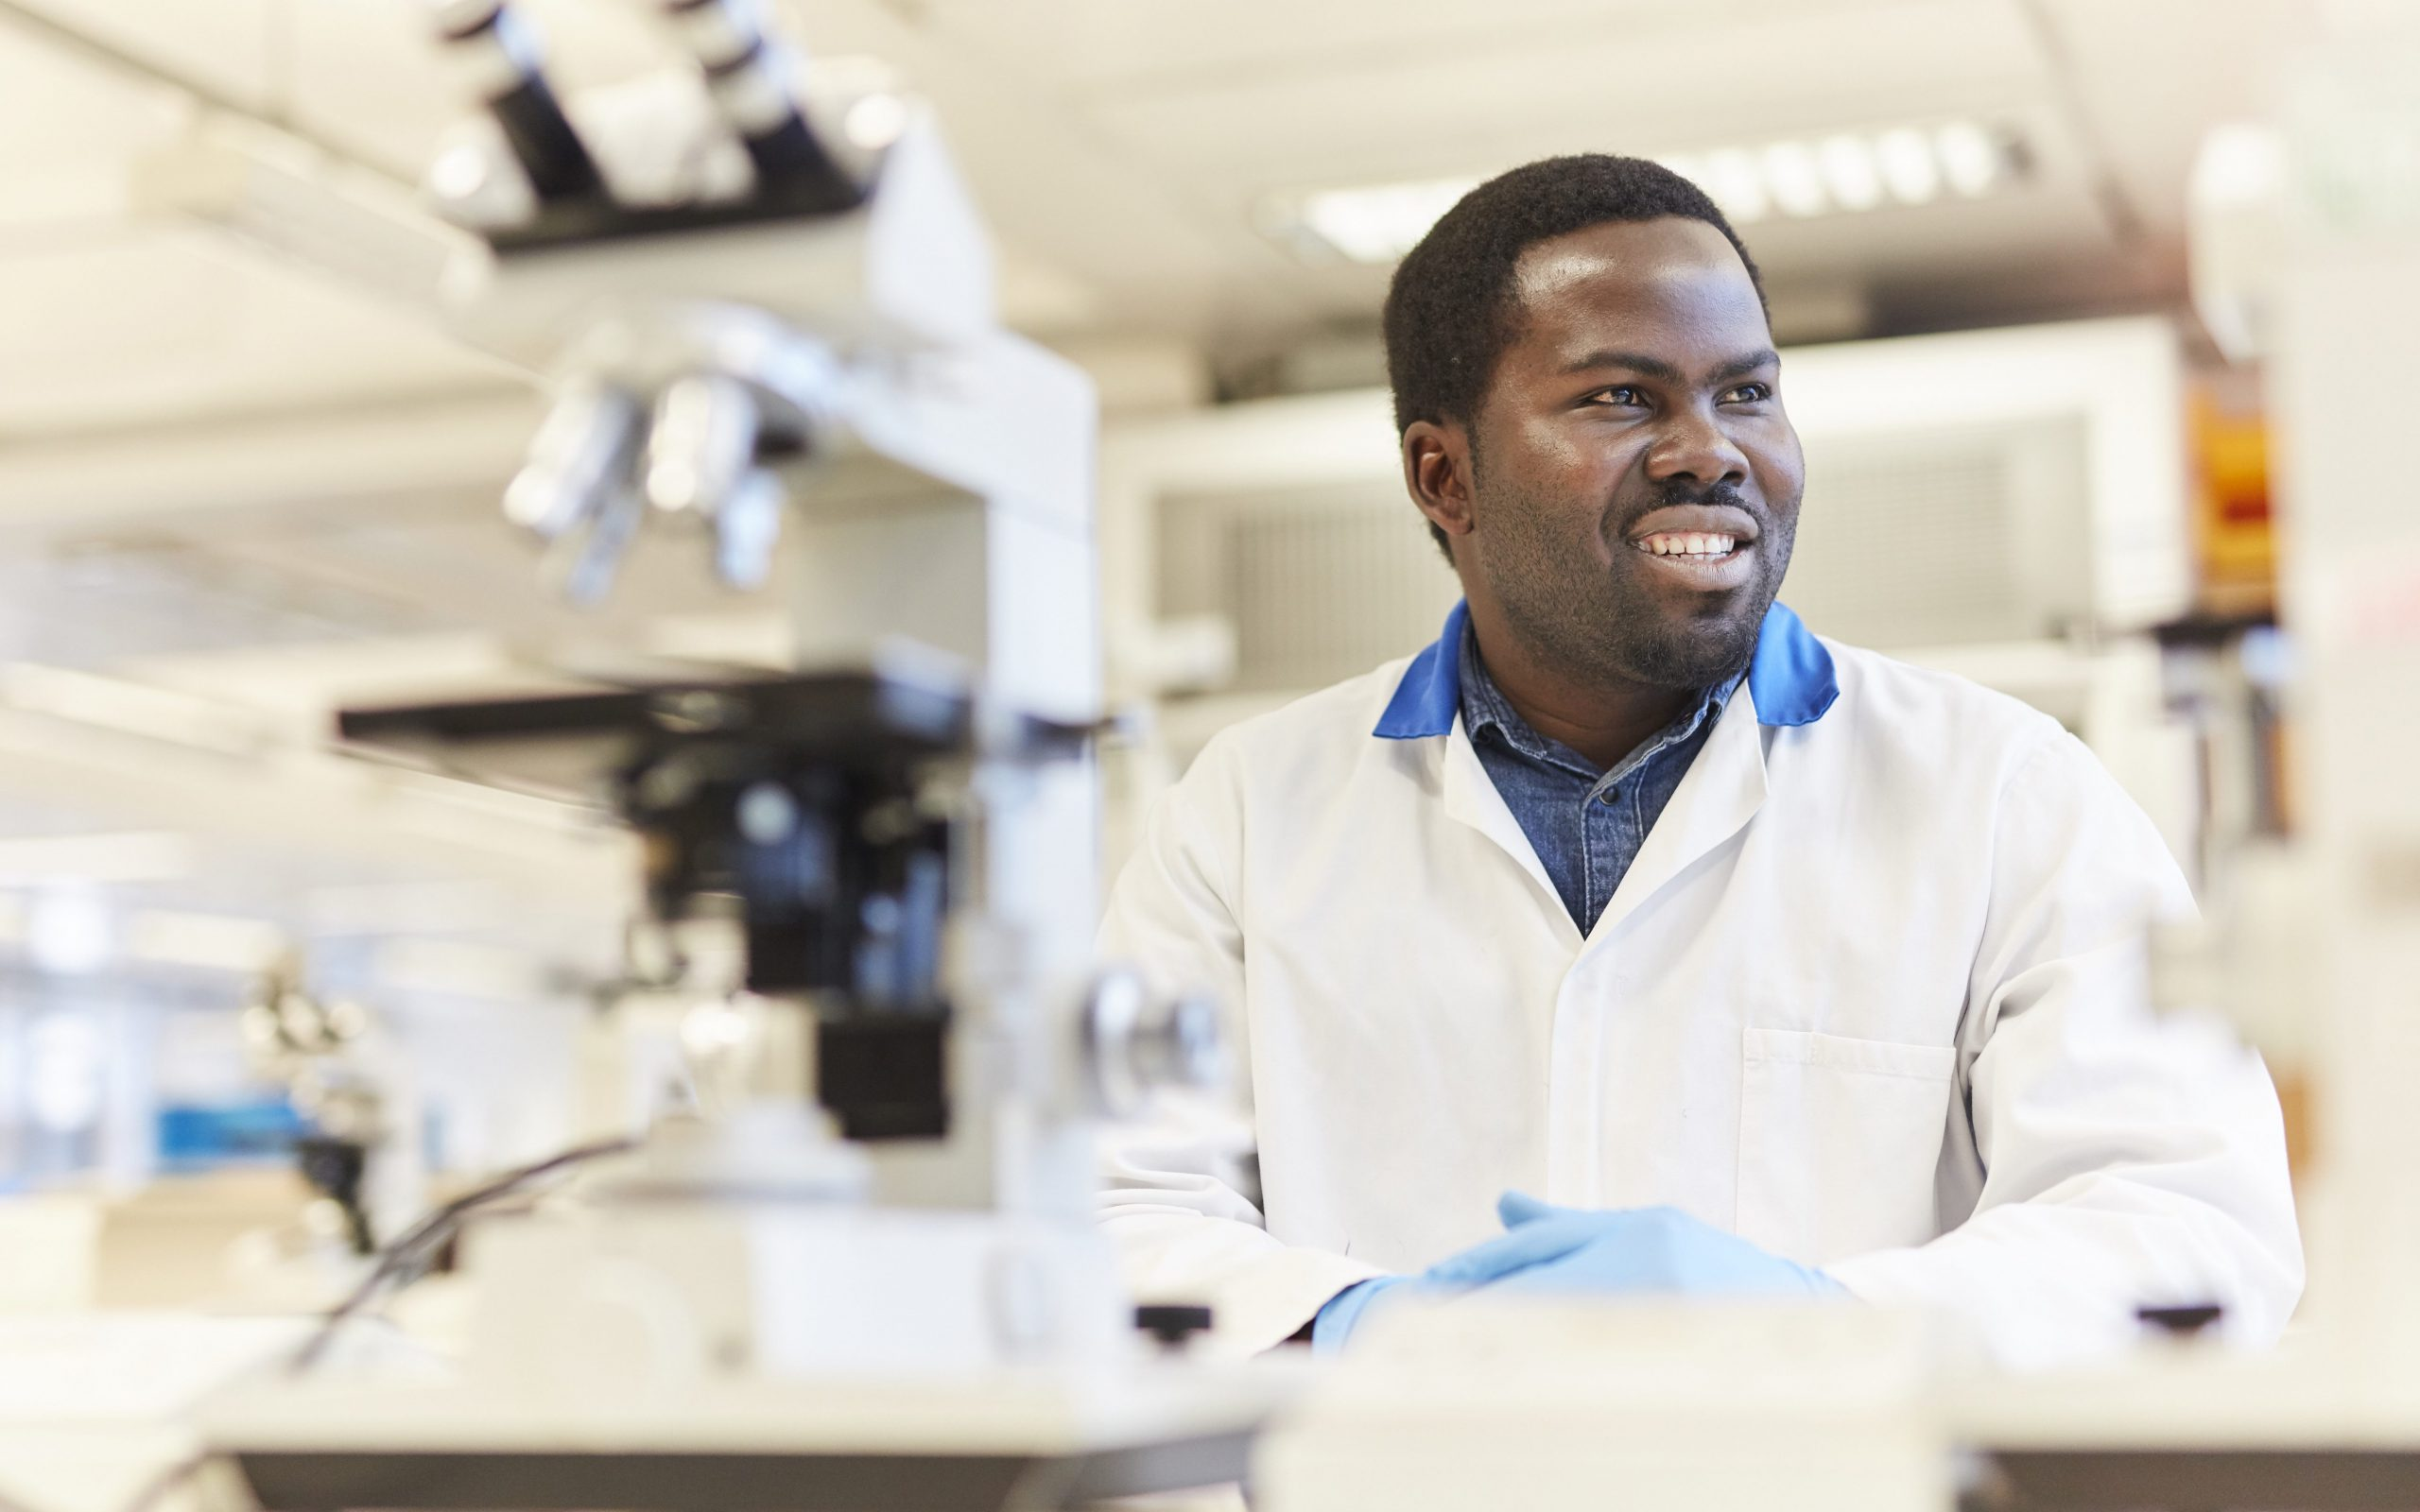 A picture of a young man wearing a lab coat in a science lab with a microscope in the forefront.